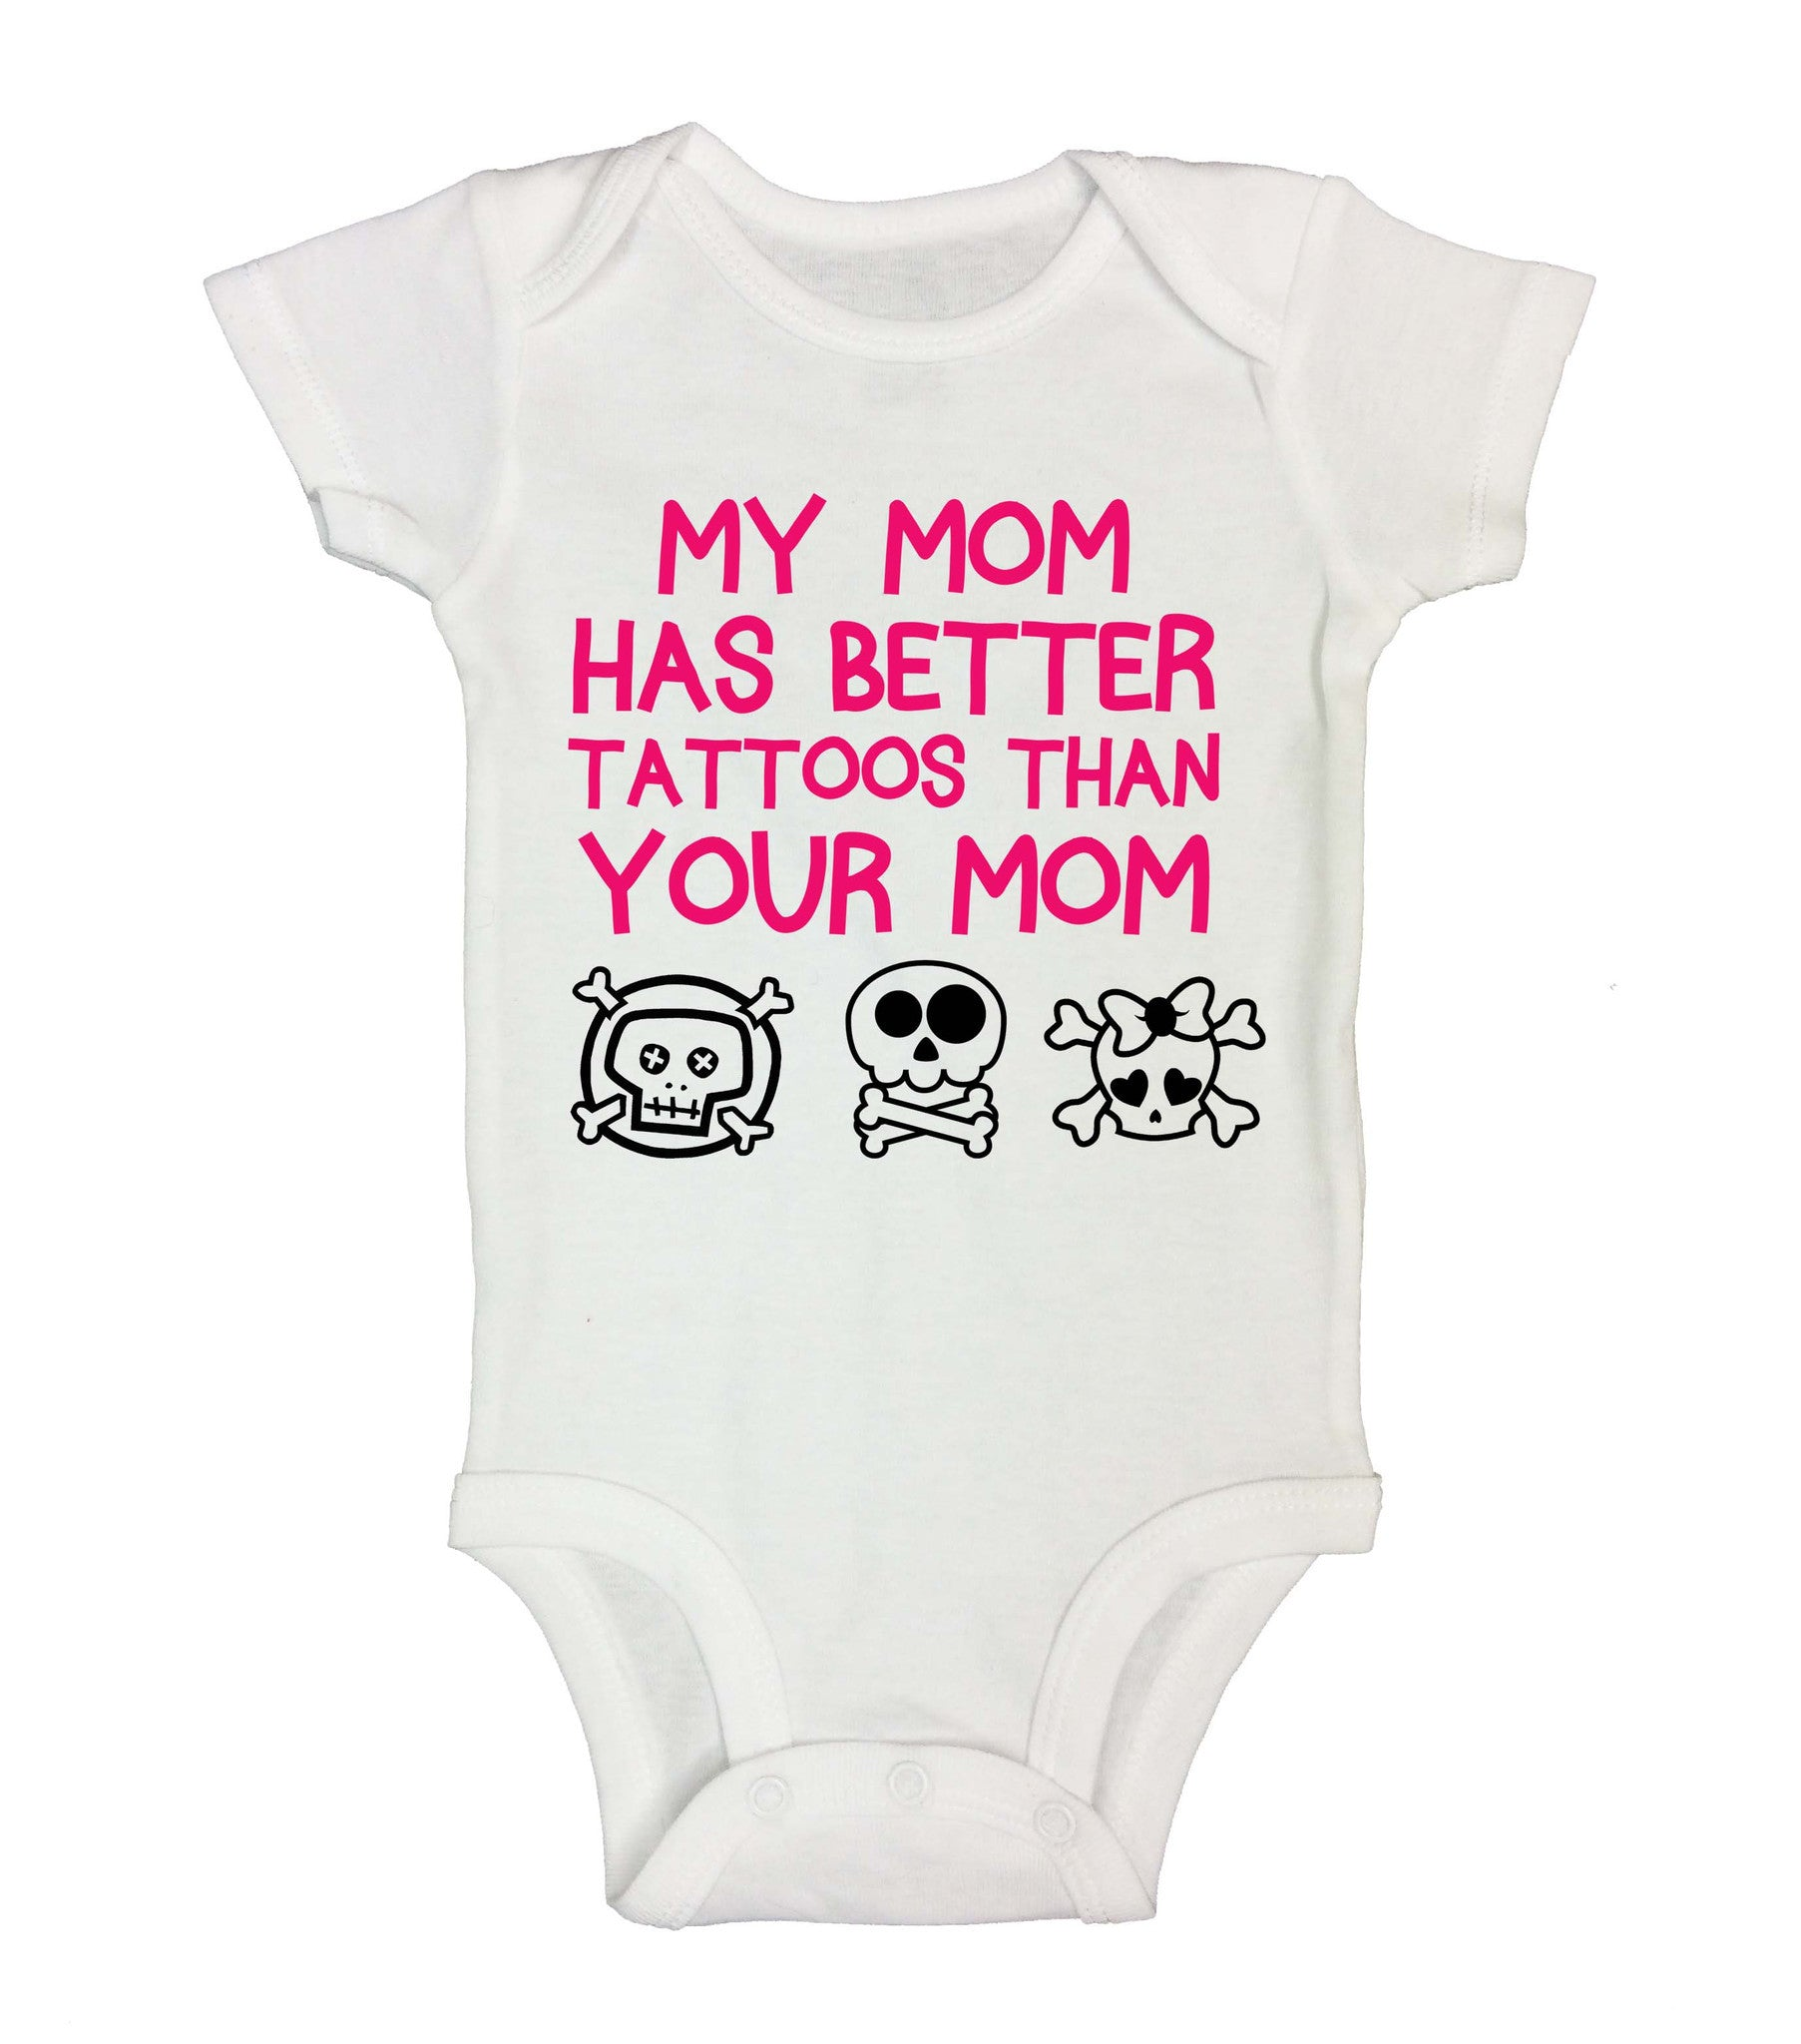 My Mom Has Better Tattoos Than Your Mom Funny Kids Onesie - 174 - Funny Shirts Tank Tops Burnouts and Triblends  - 2